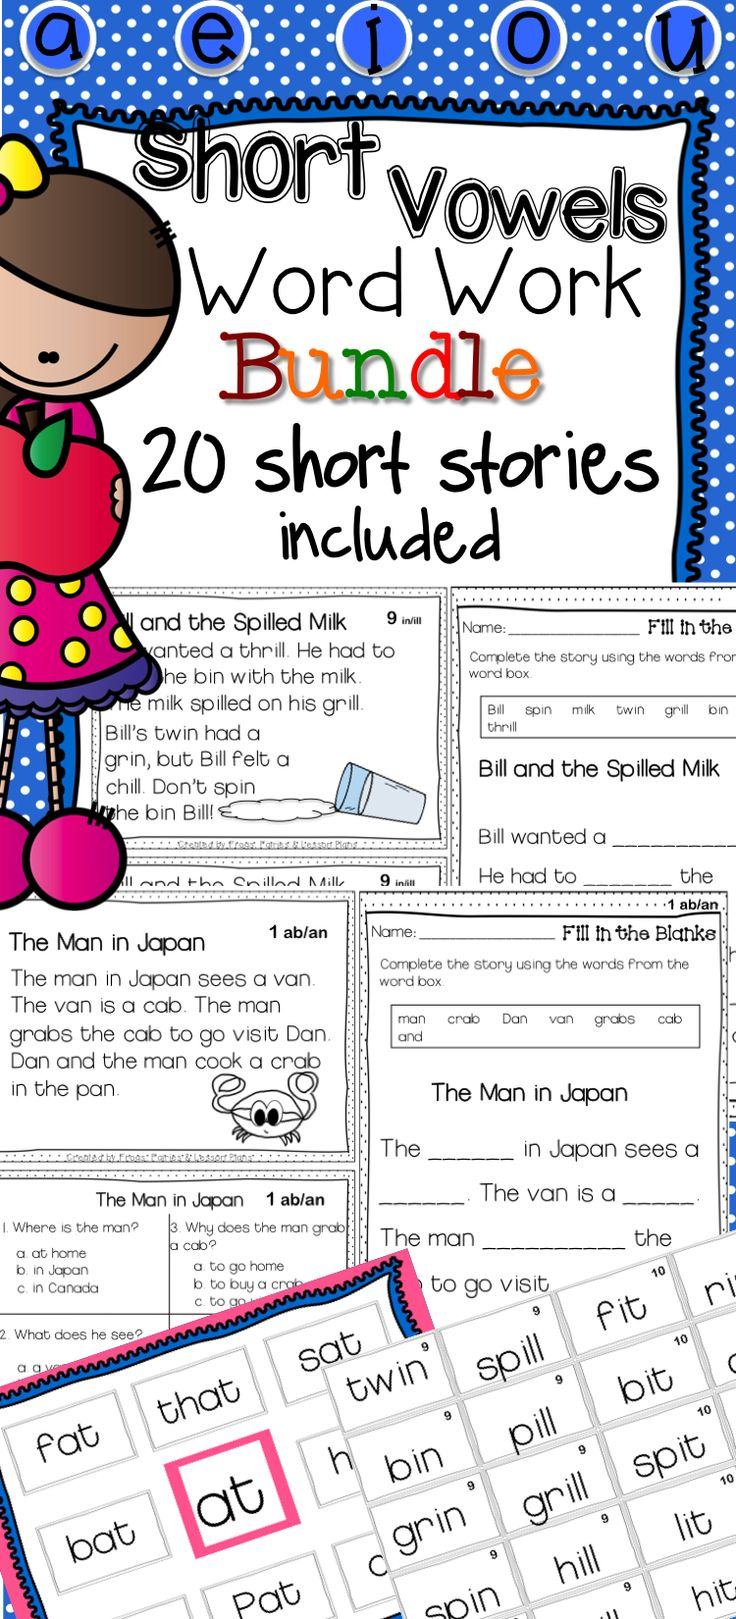 20 weeks of Word Work centers and activities!!! This Word Work product includes short stories, comprehension questions, sorting cards, fill in the blanks, and other goodies! Click to see a preview. Free sample available!!!